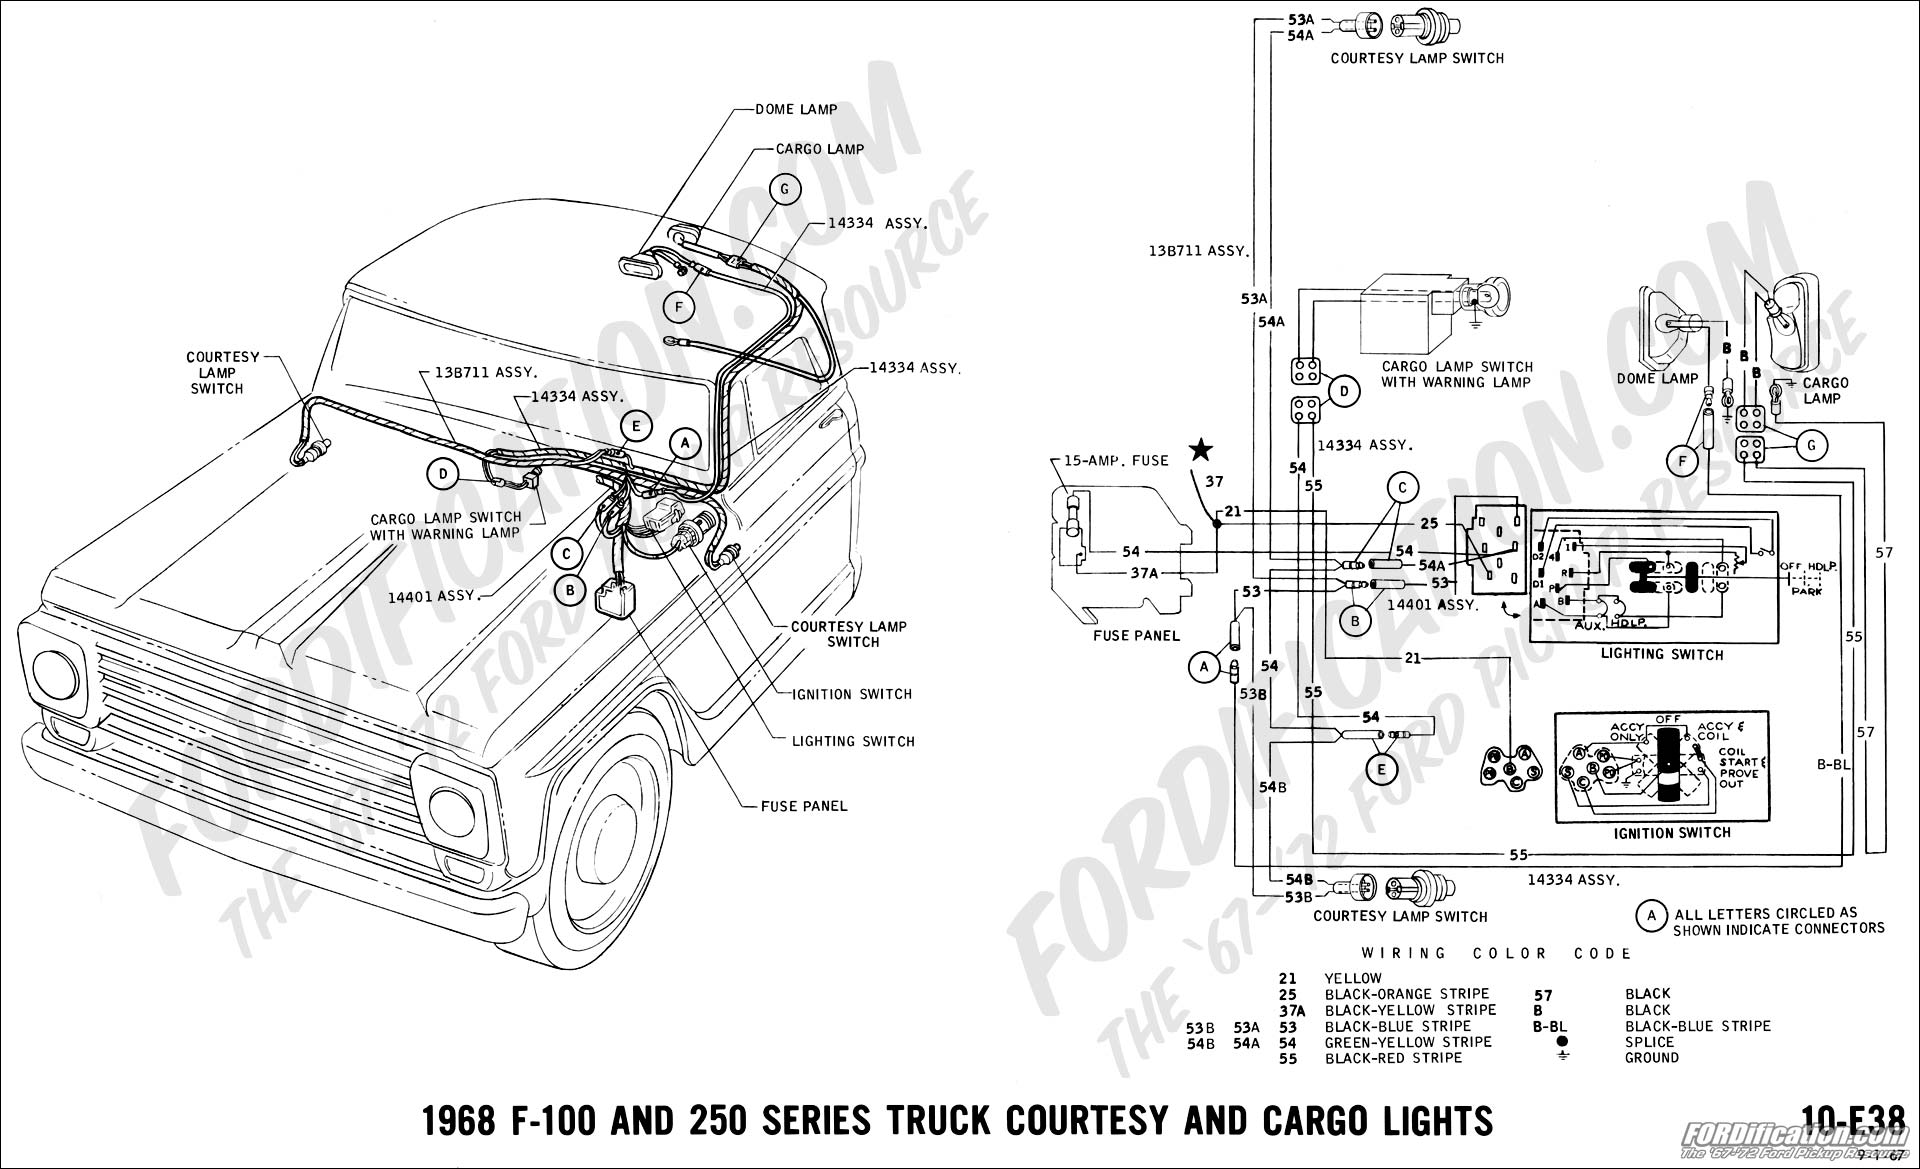 1fygx 1991 Ford E350 Heater Ac Fan Working besides Faq Brakecontroller moreover Bodybuilder76 also Schematics h in addition 857866 Ford 360 Vacuum Diagram. on truck camper wiring diagram